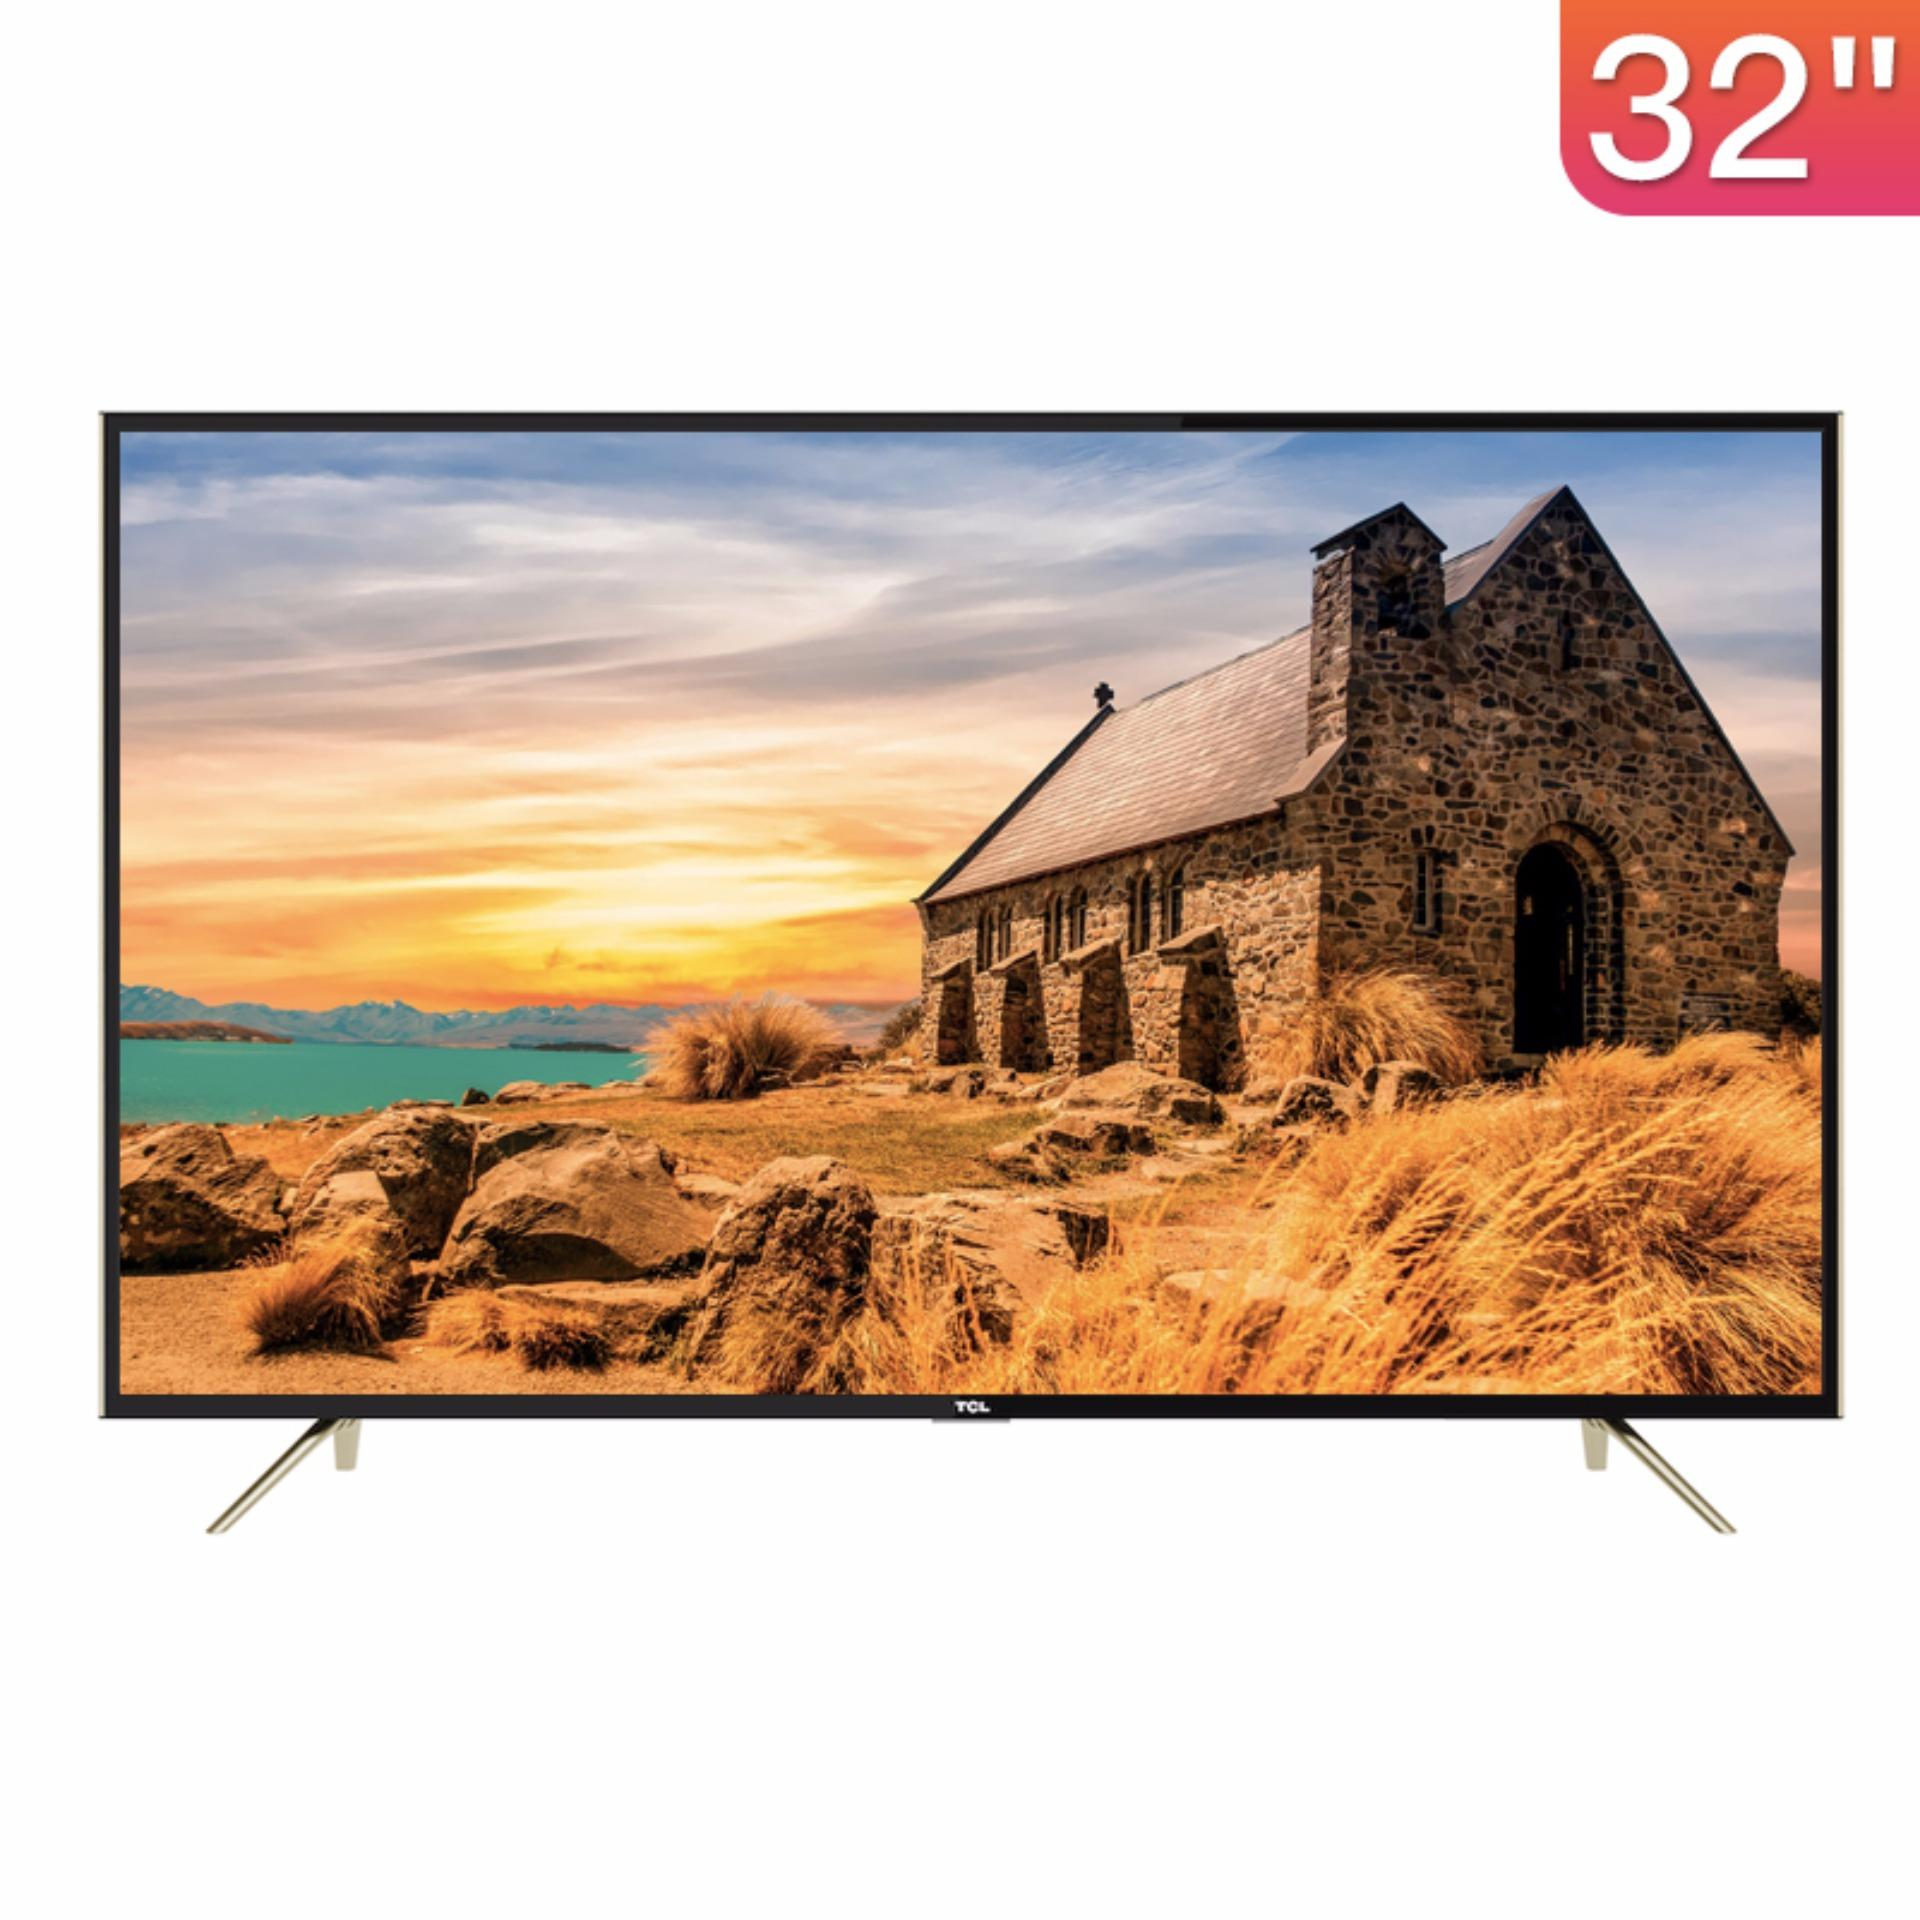 Giá bán Tivi Smart LED TCL 32 inch HD – Model 32S6000